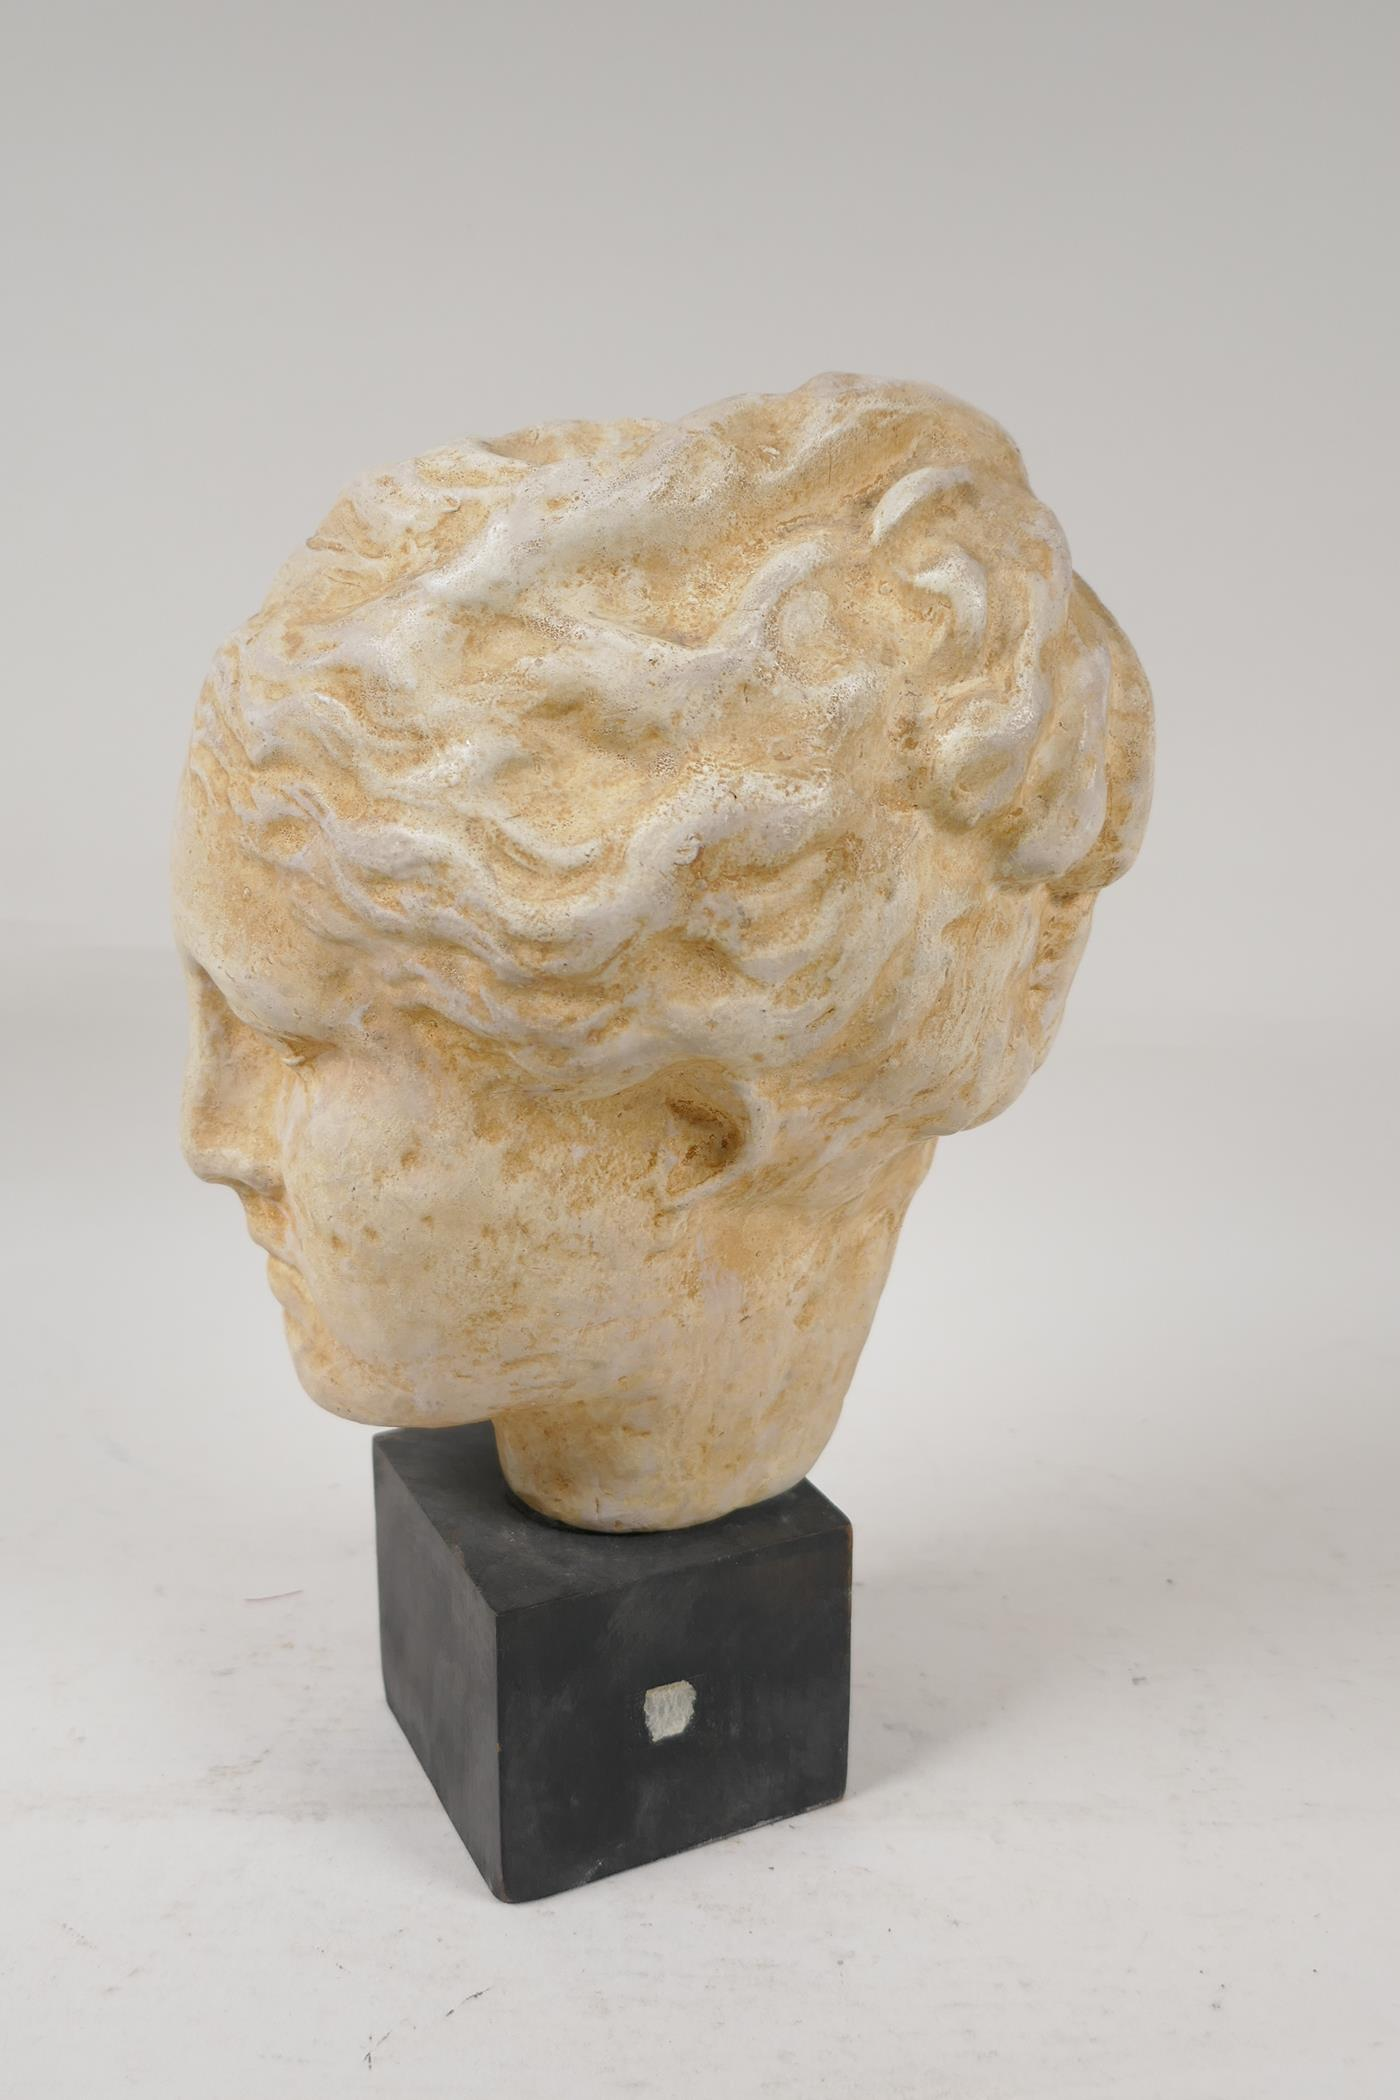 """A Grand Tour style pottery bust after the classic, with certifying seal attached, 10"""" high - Image 3 of 4"""